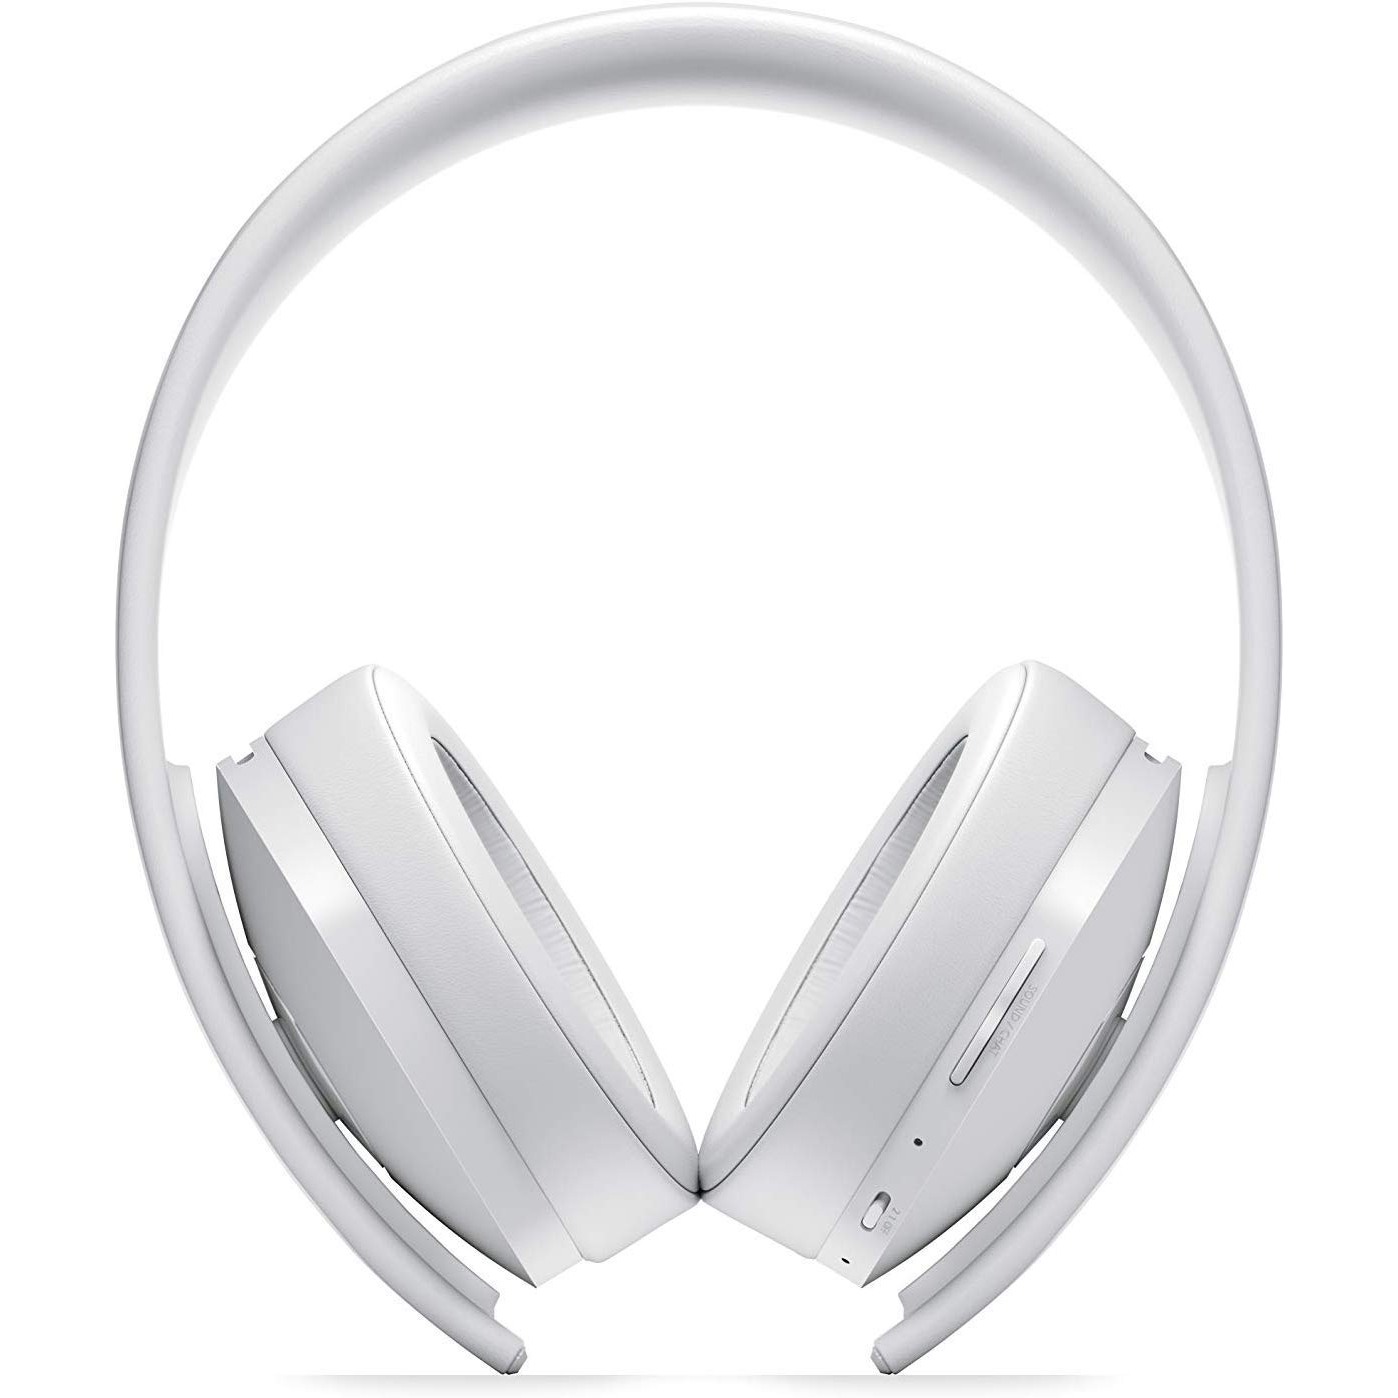 Image of Sony PlayStation Oro Wireless Cuffie - Bianco (per PlayStation 4 PS4)